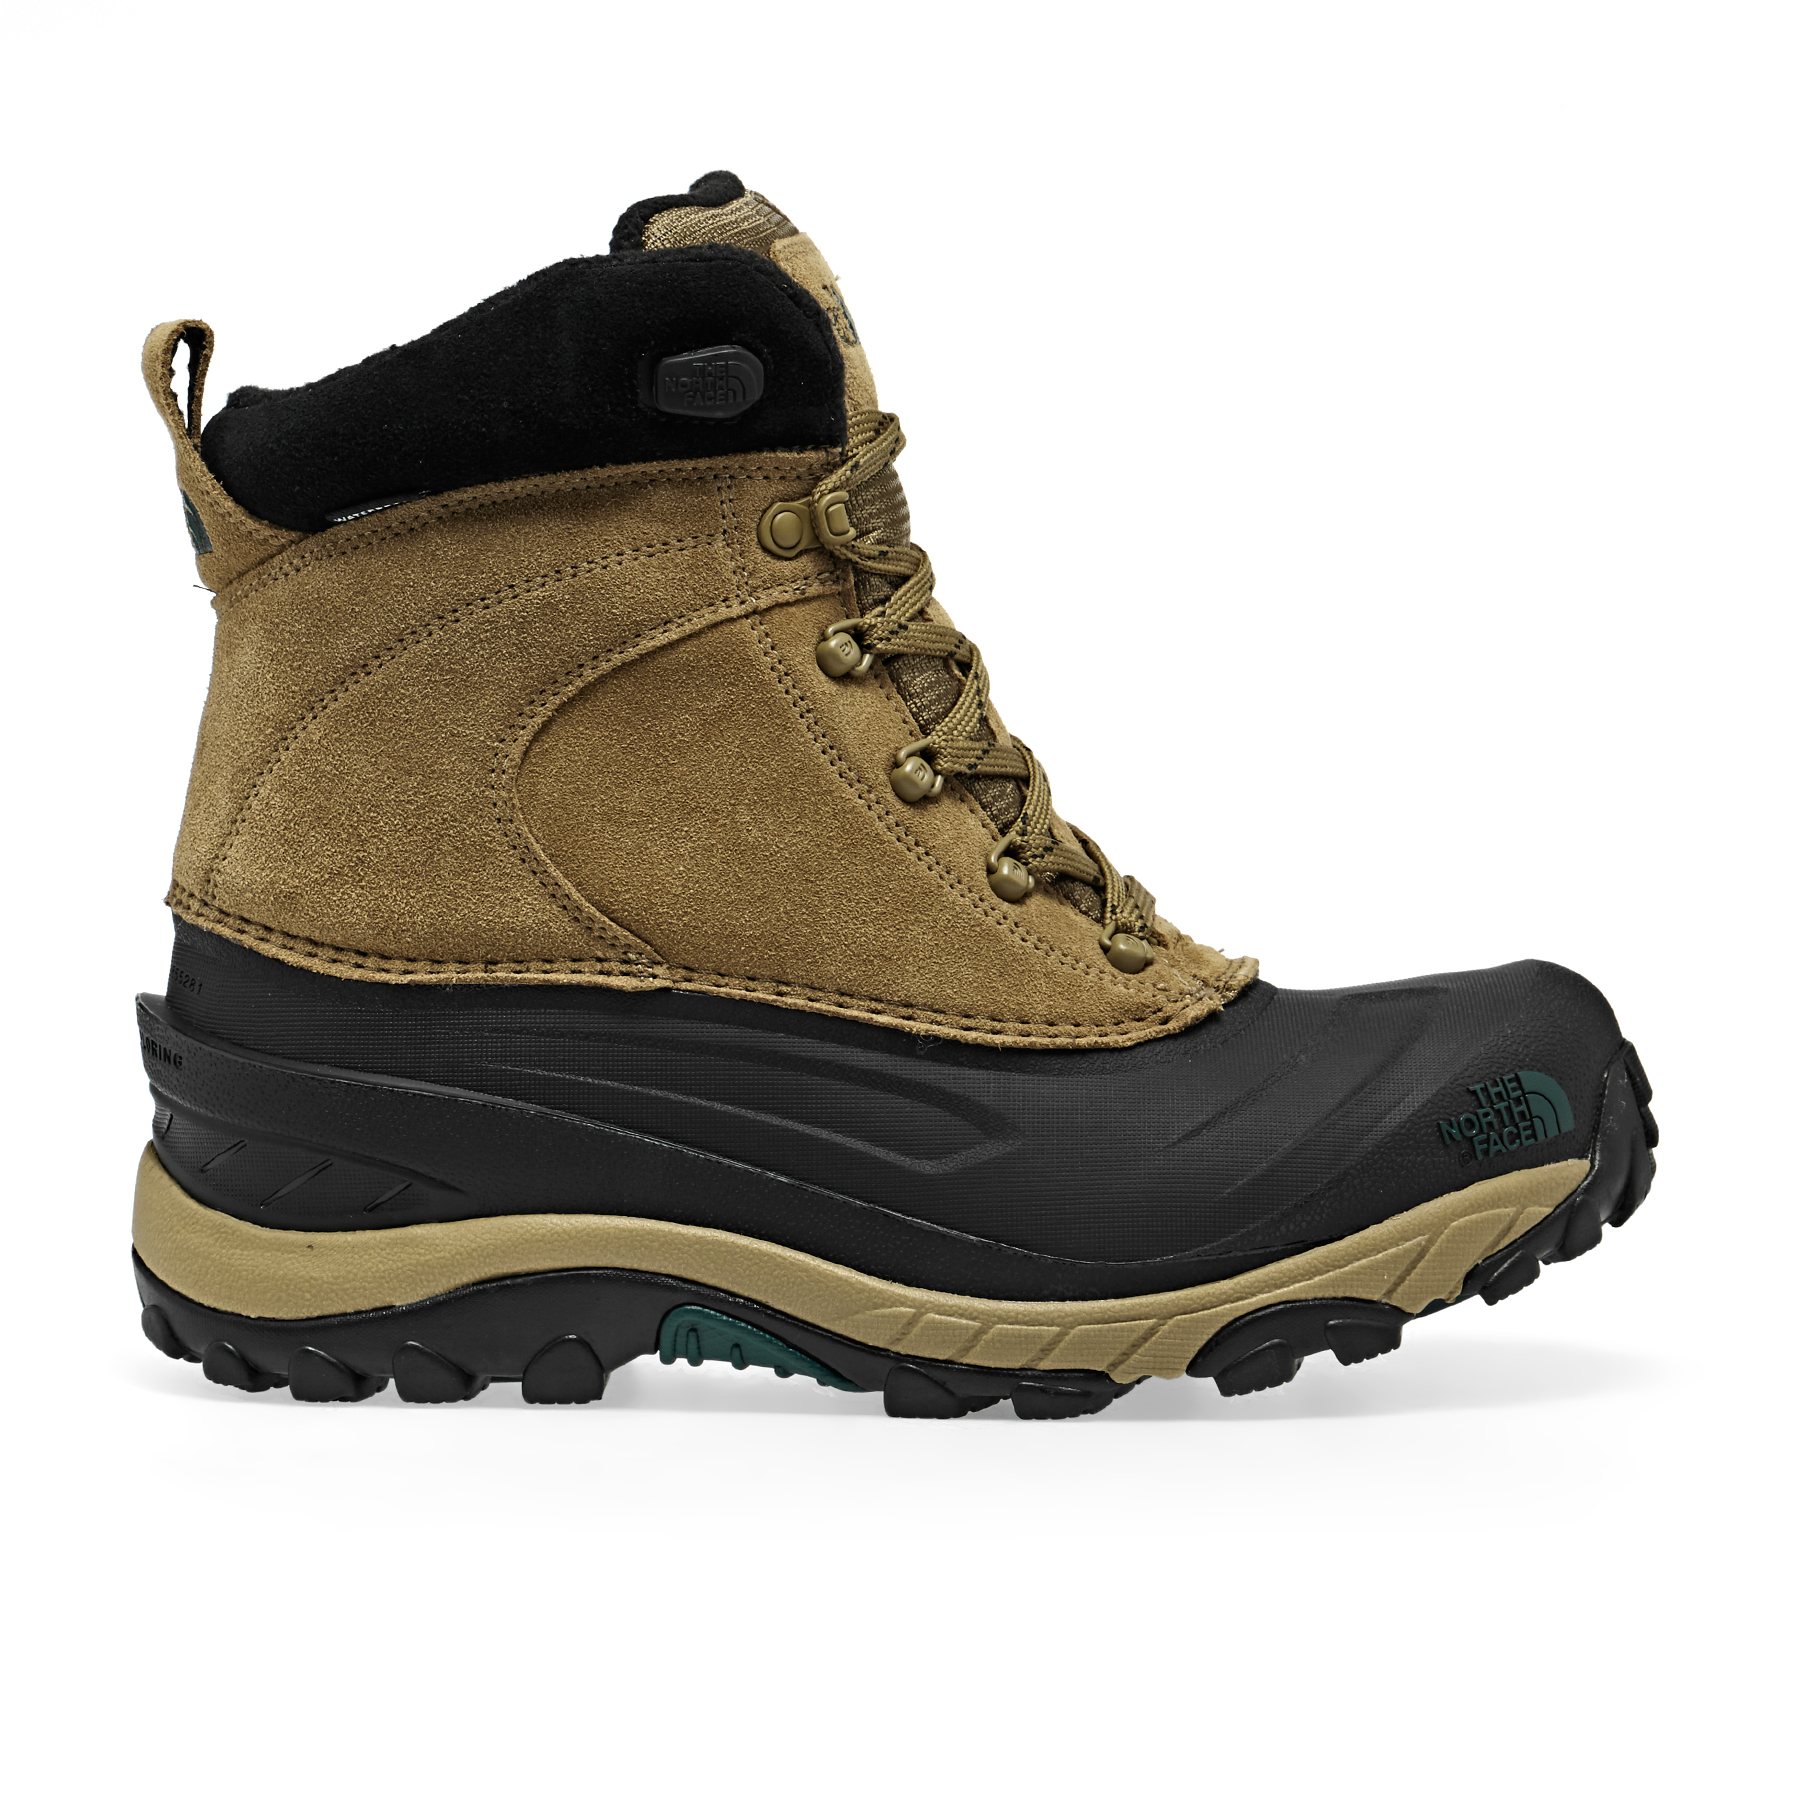 North Face Chilkat III Walking Boots